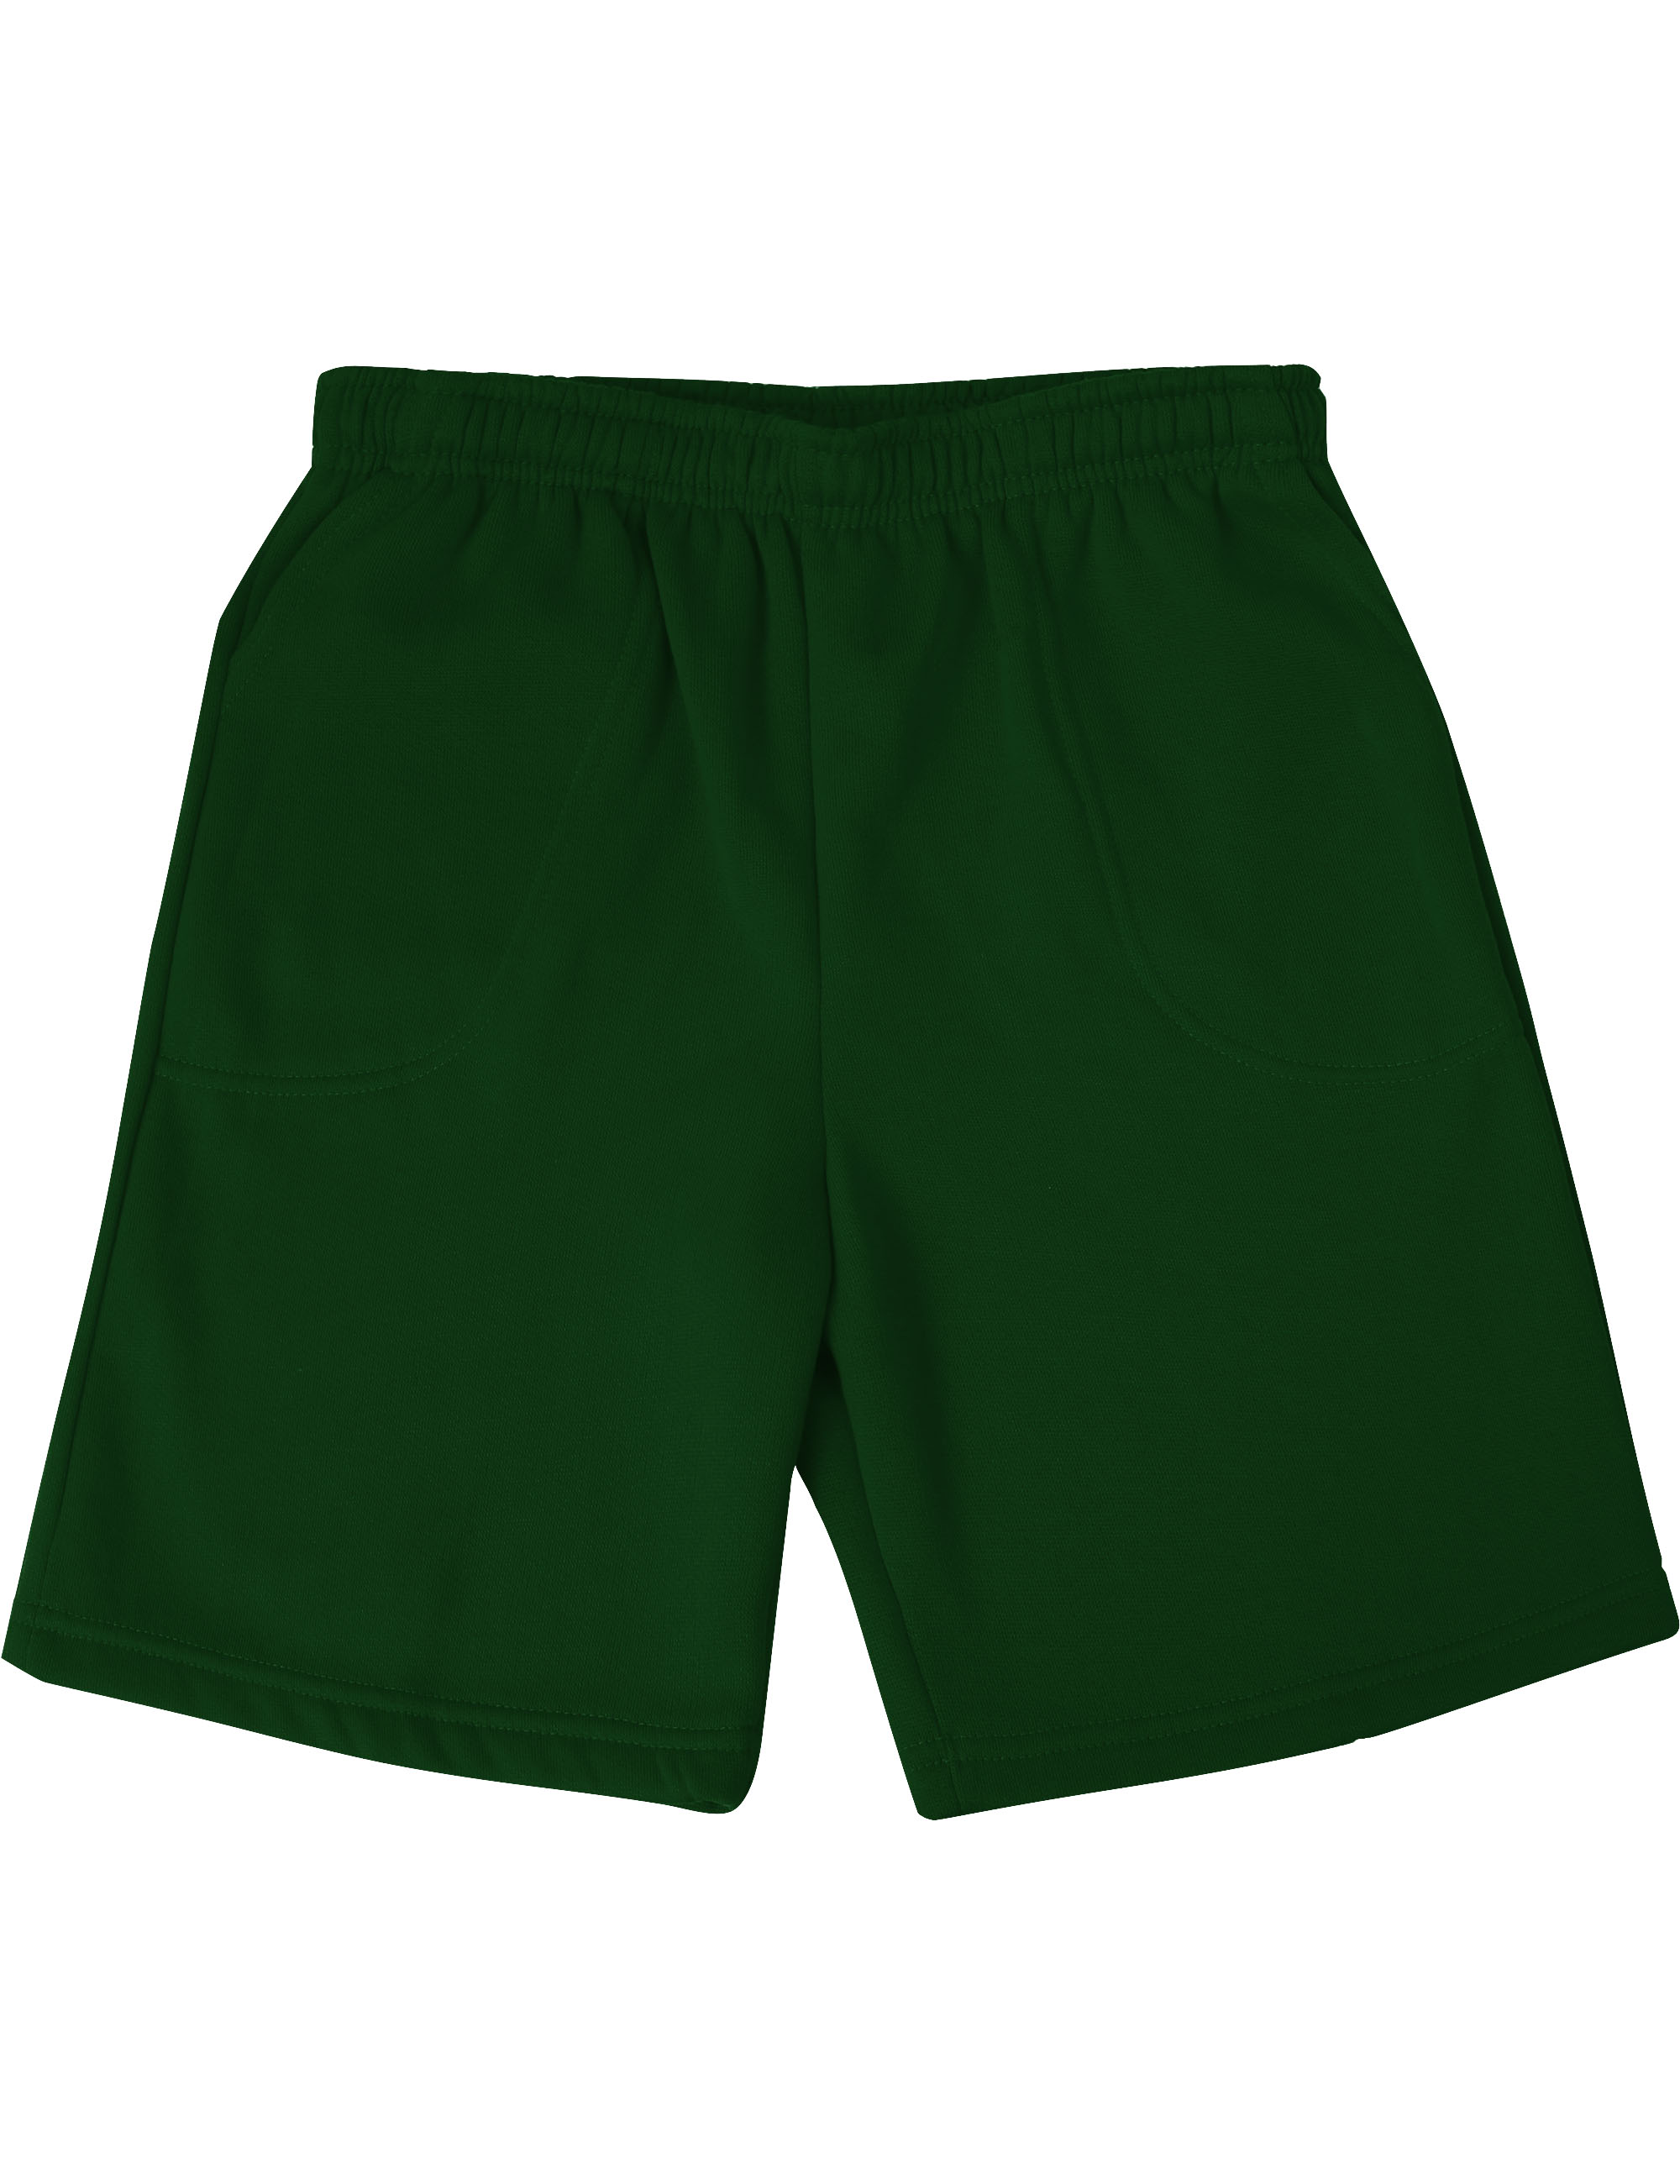 Mens Sweat Shorts Brushed Fleece Lightweight Shorts with Pockets